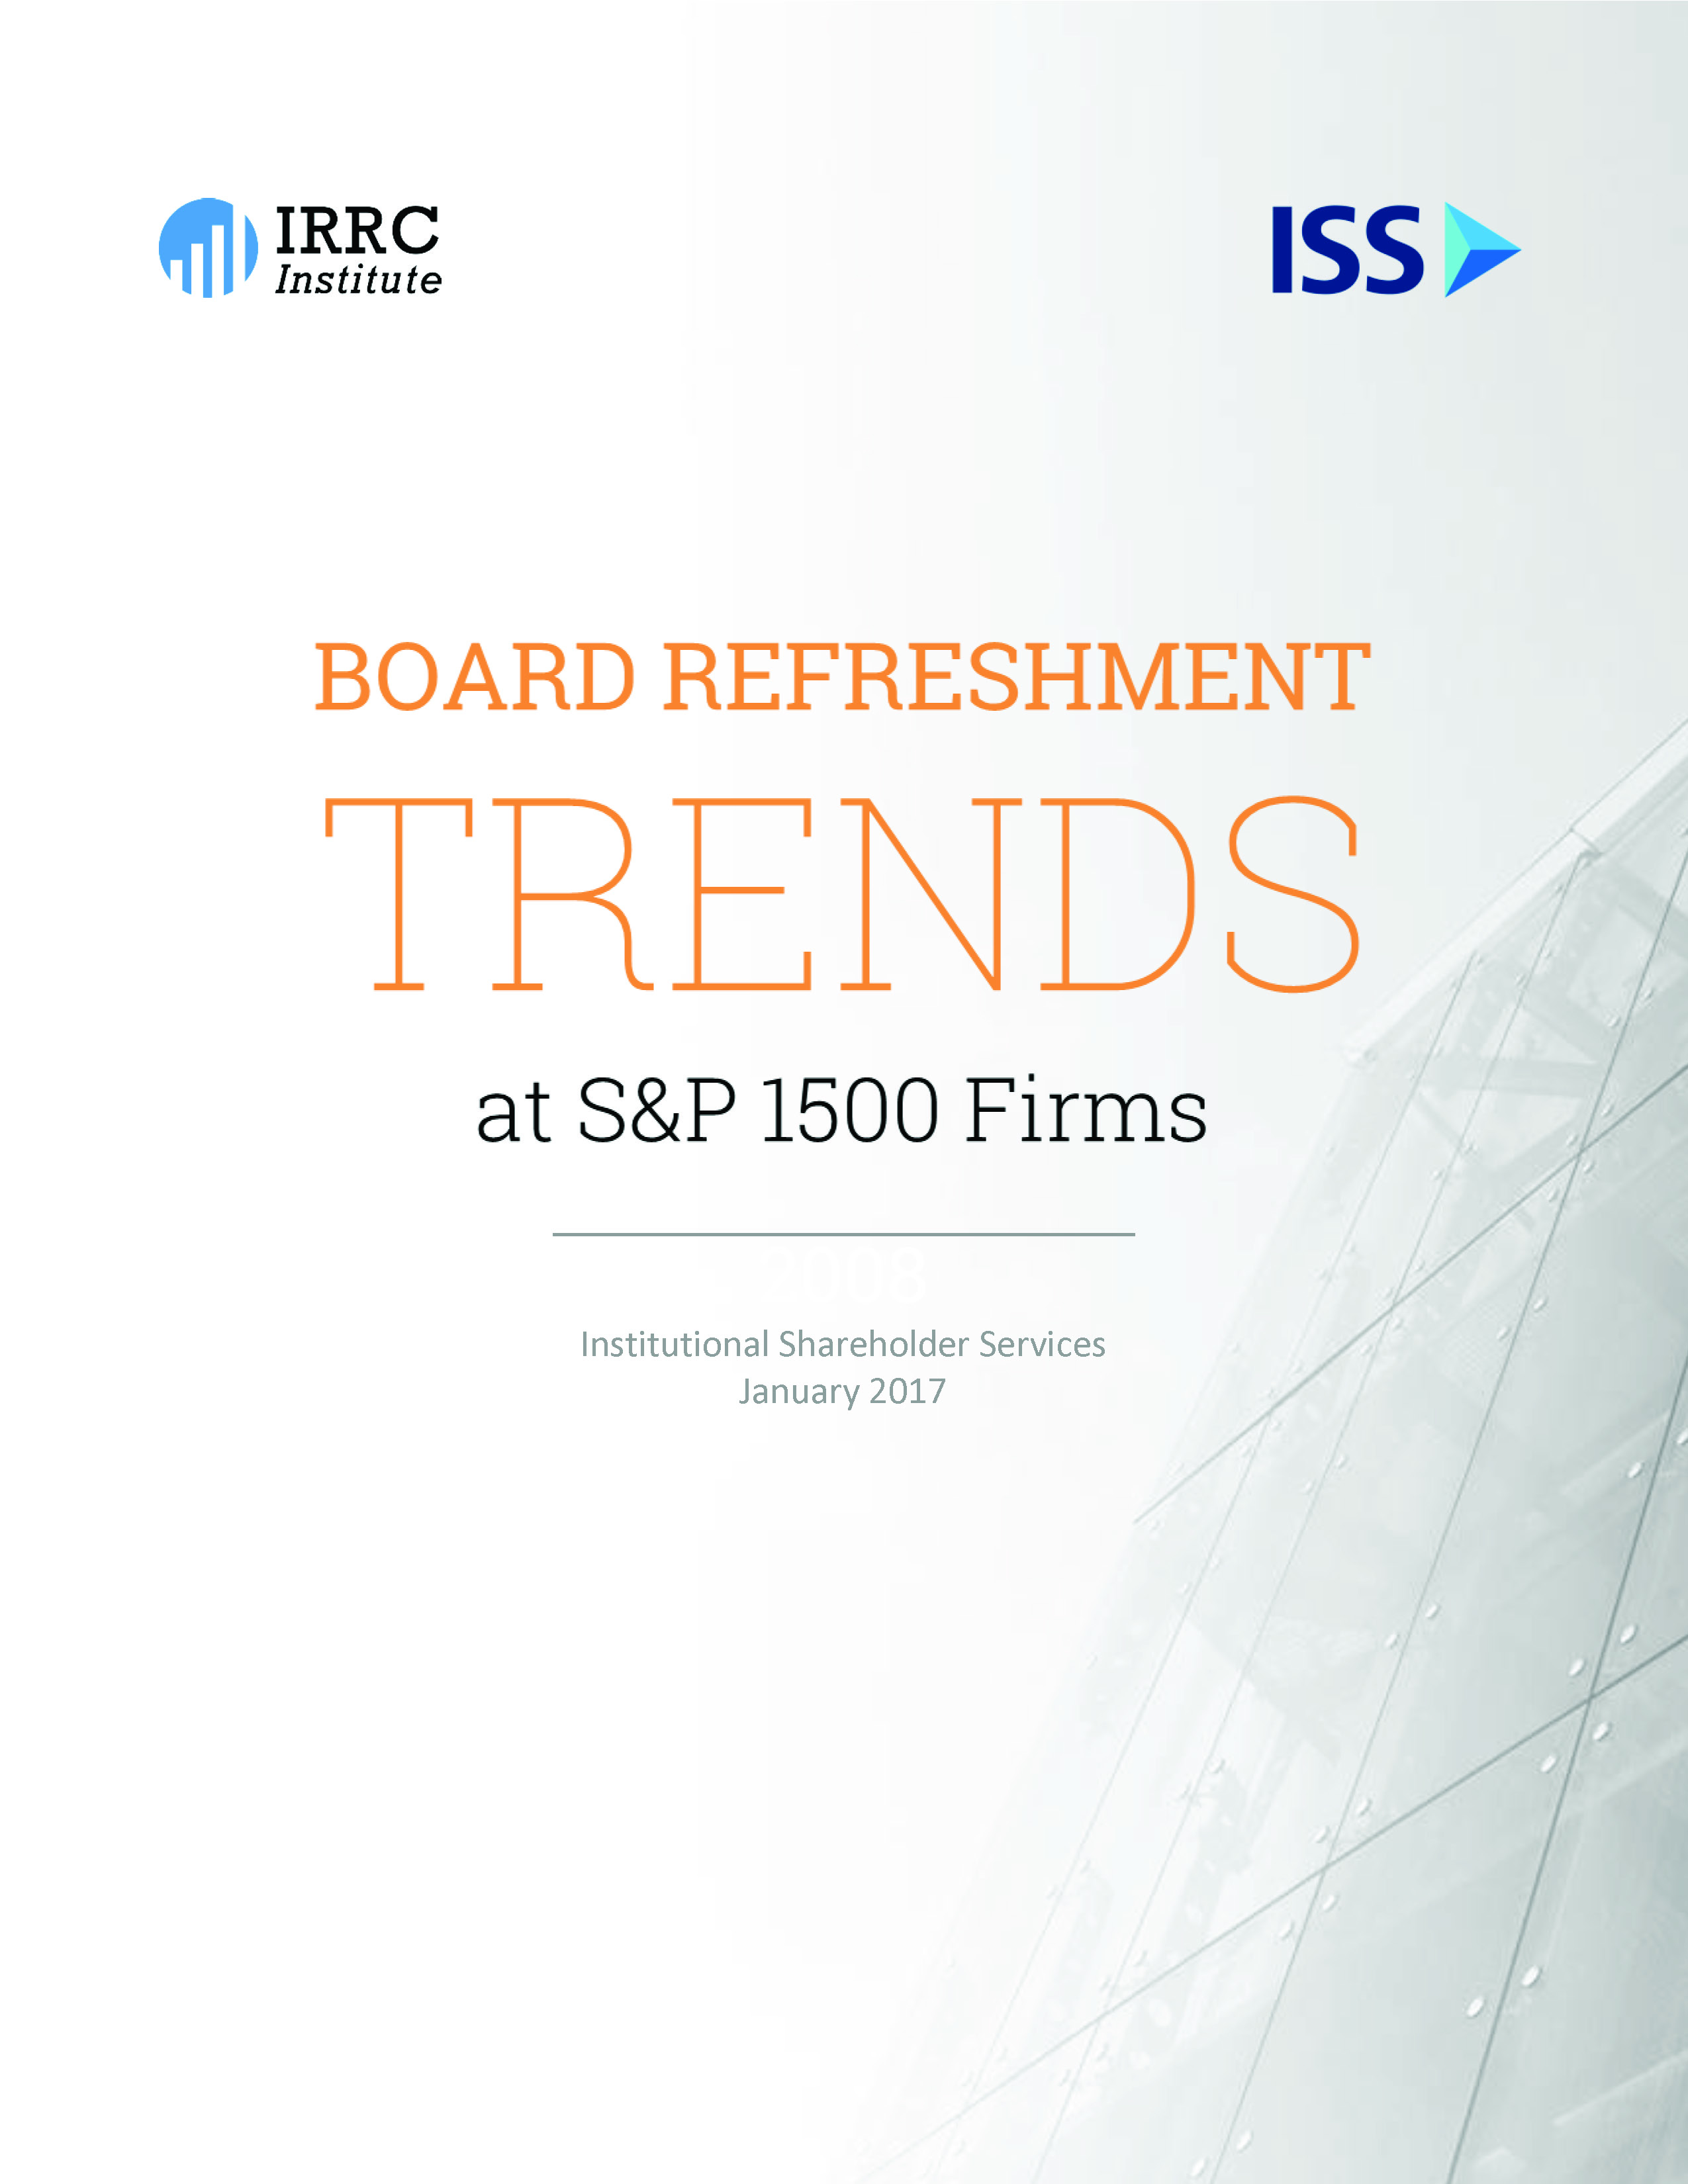 Board Refreshment Trends at S&P 1500 Firms - ISS